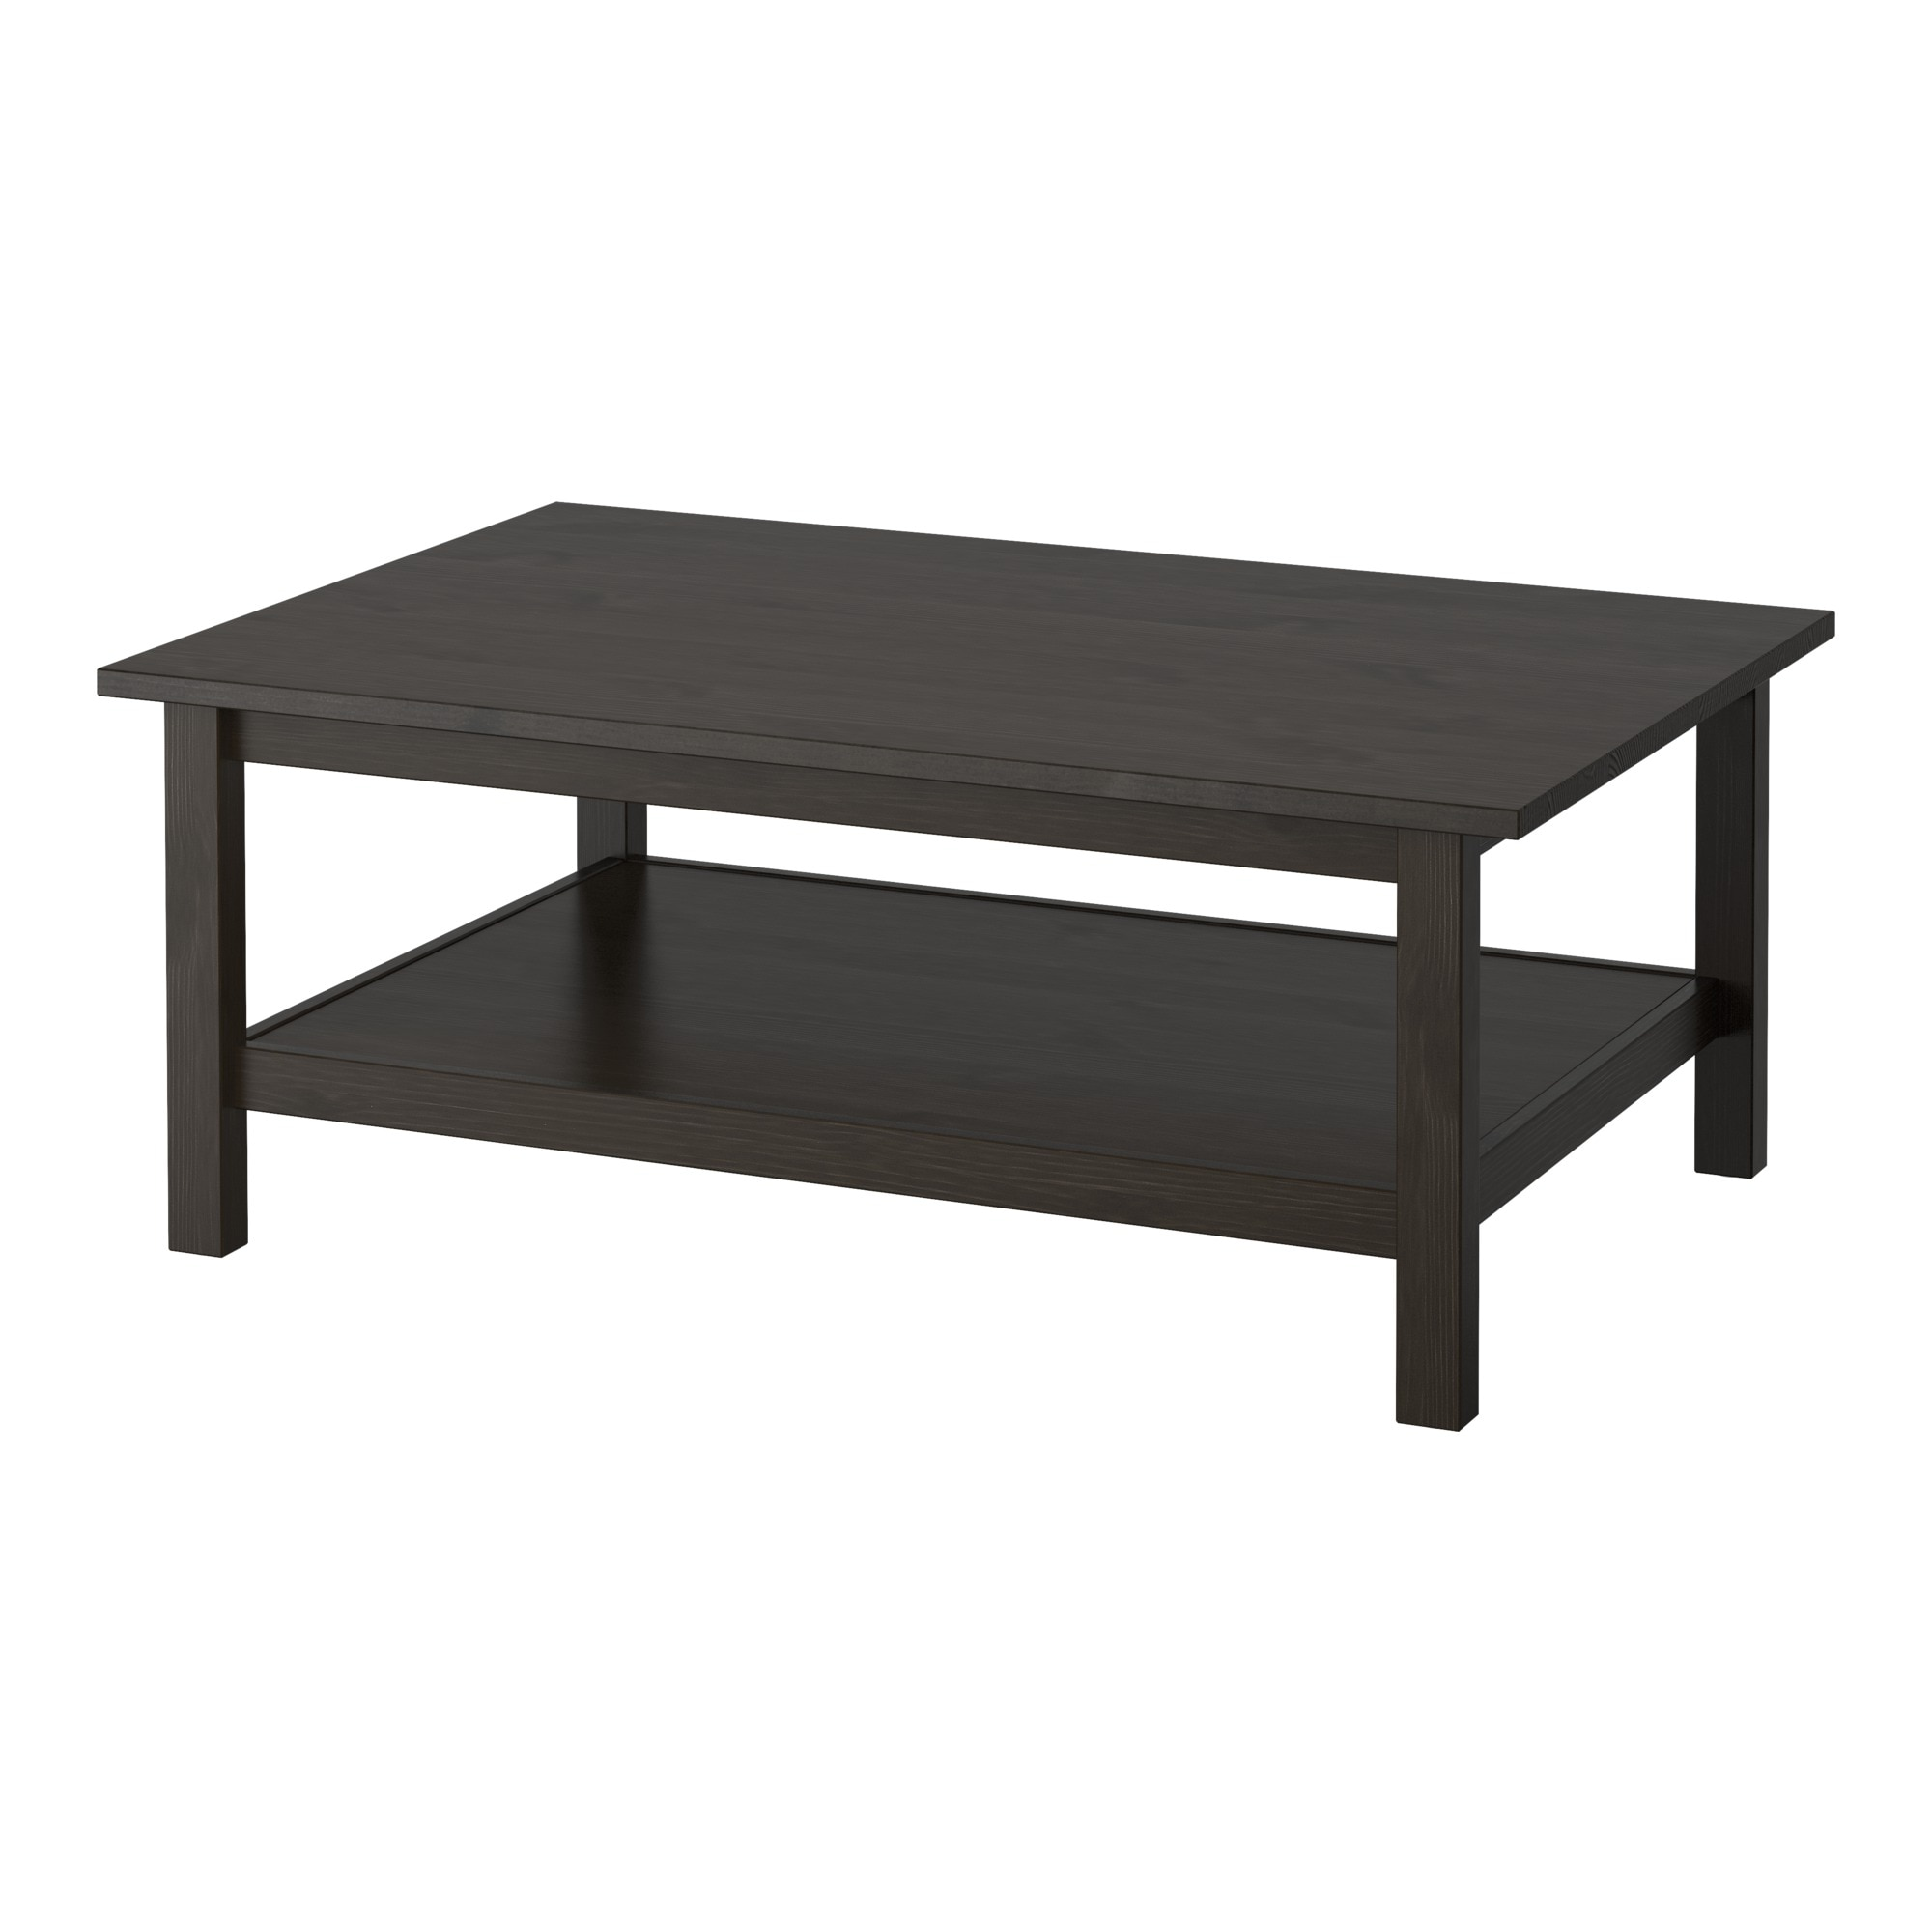 hemnes coffee table - black-brown - ikea